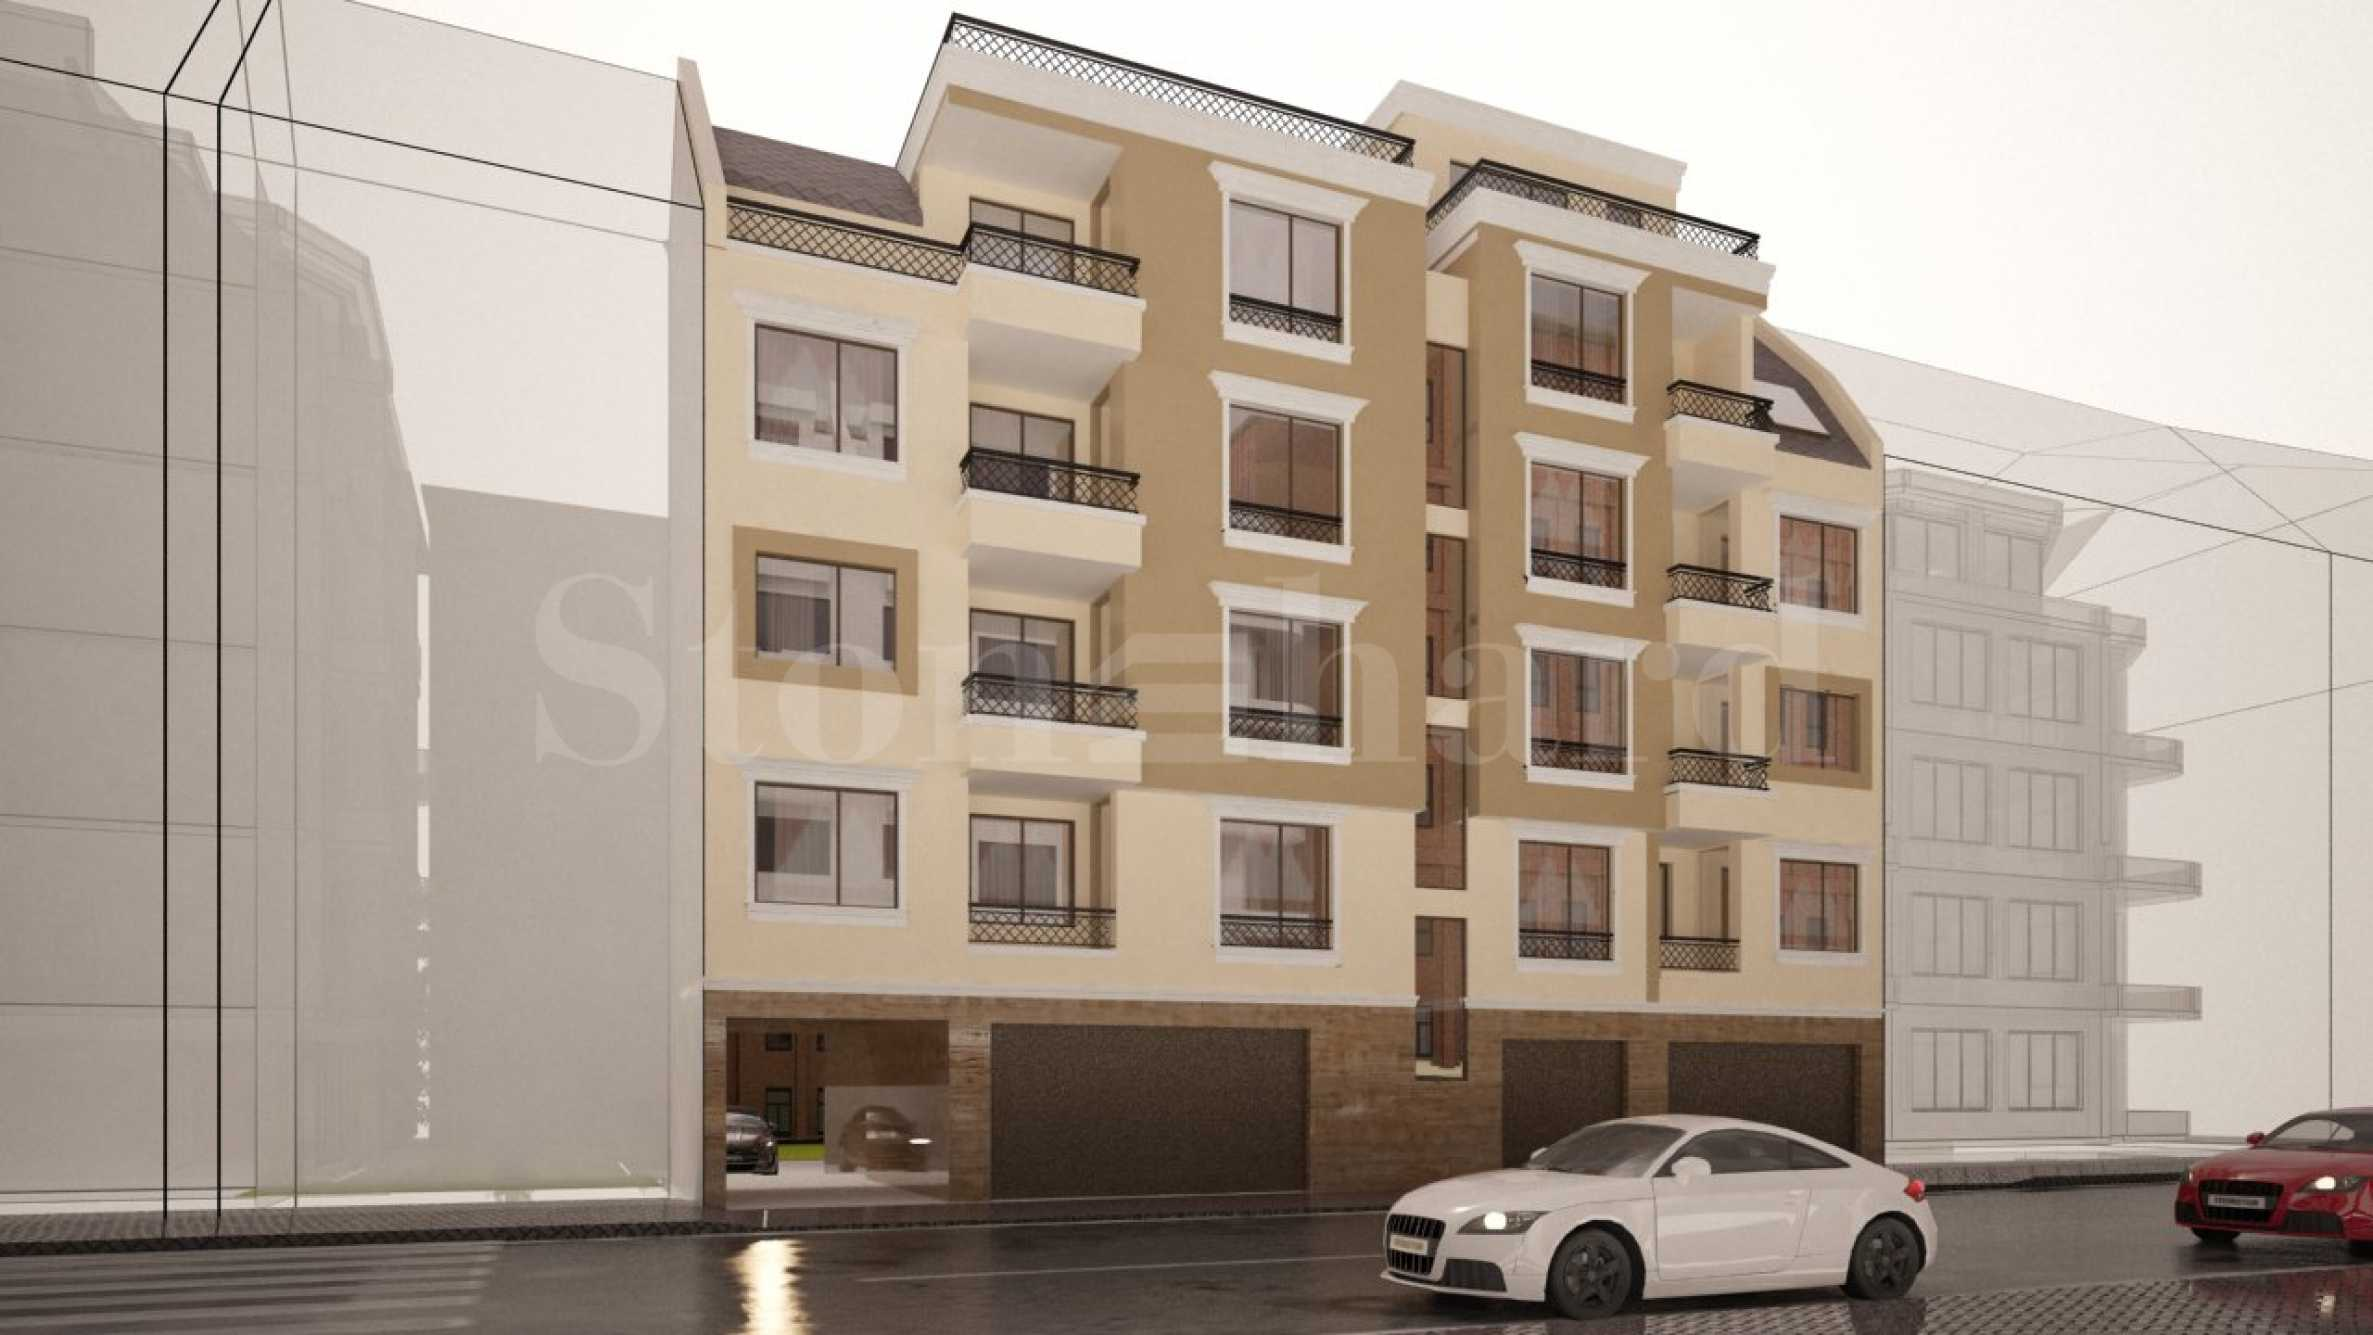 1-Bedroom apartments in a new 5-storey building near the park in Burgas 1 - Stonehard